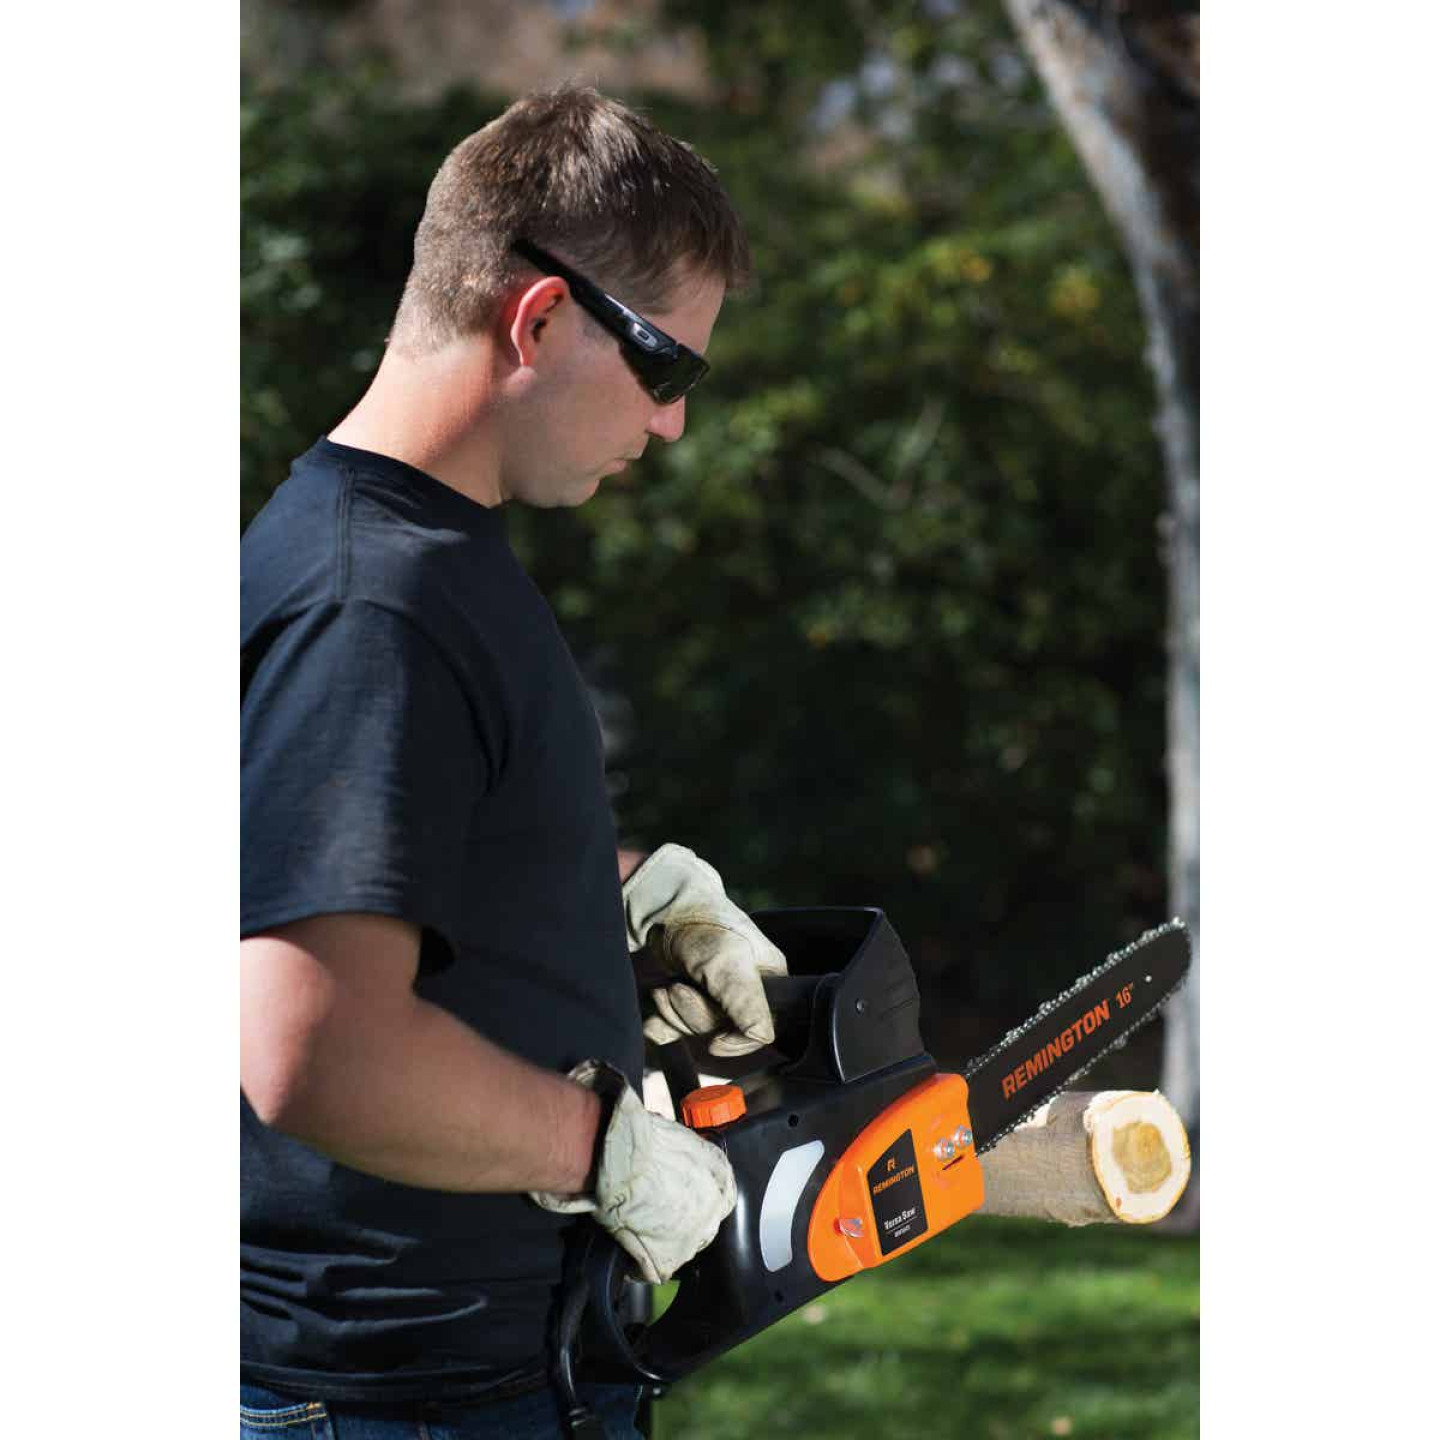 Remington Versa Saw RM1645 16 In. 12A Electric Chainsaw Image 3